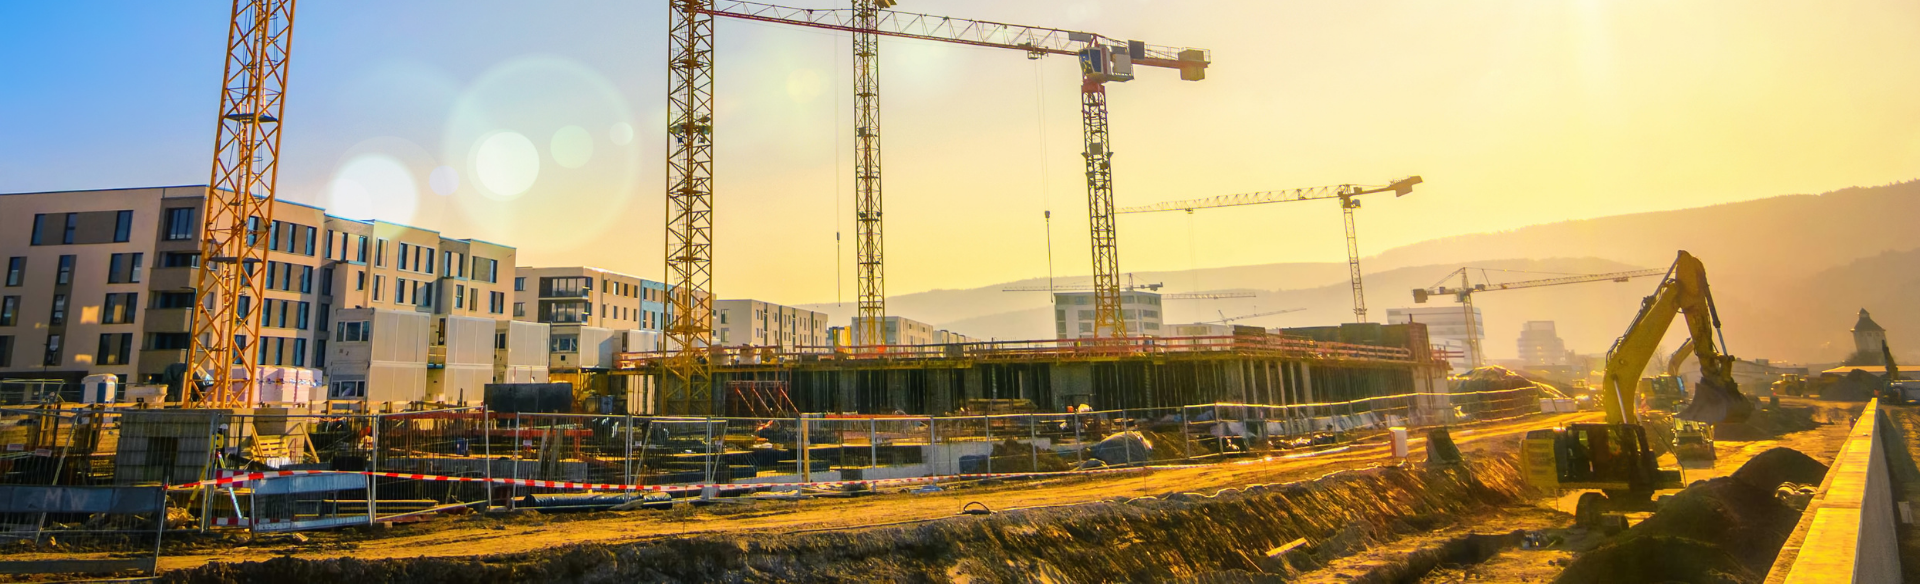 Contractor Obligations under Washington's New COVID-19 Restrictions featured image